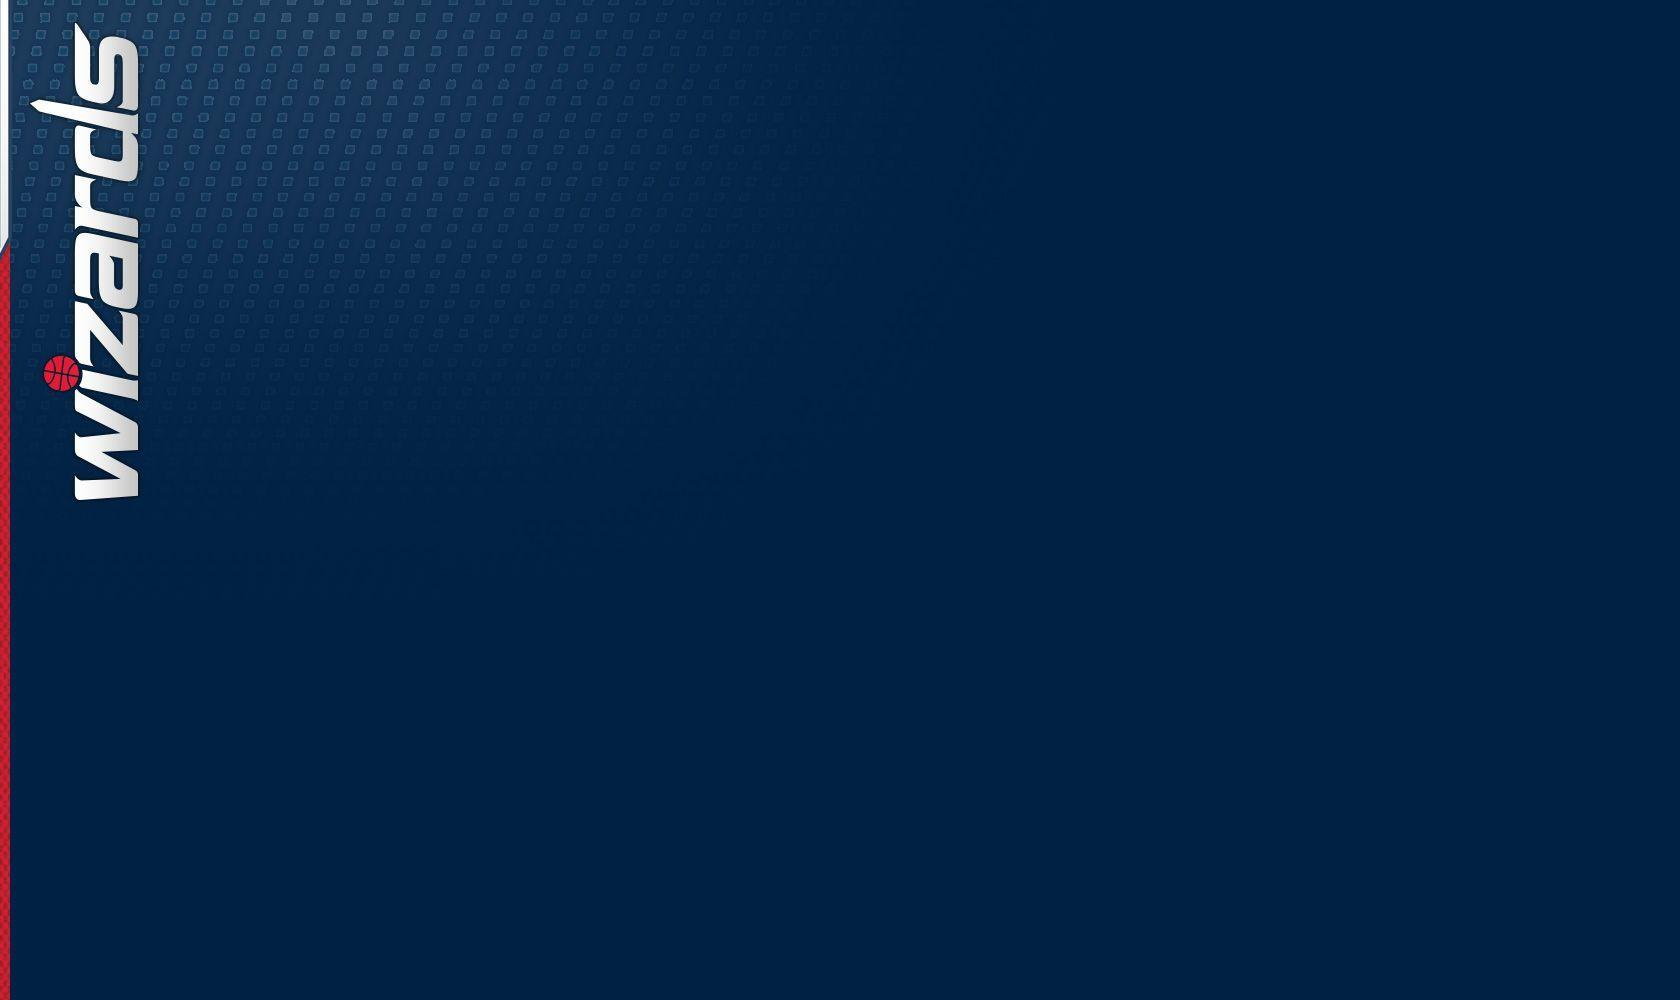 Wizards Twitter Background | THE OFFICIAL SITE OF THE WASHINGTON ...